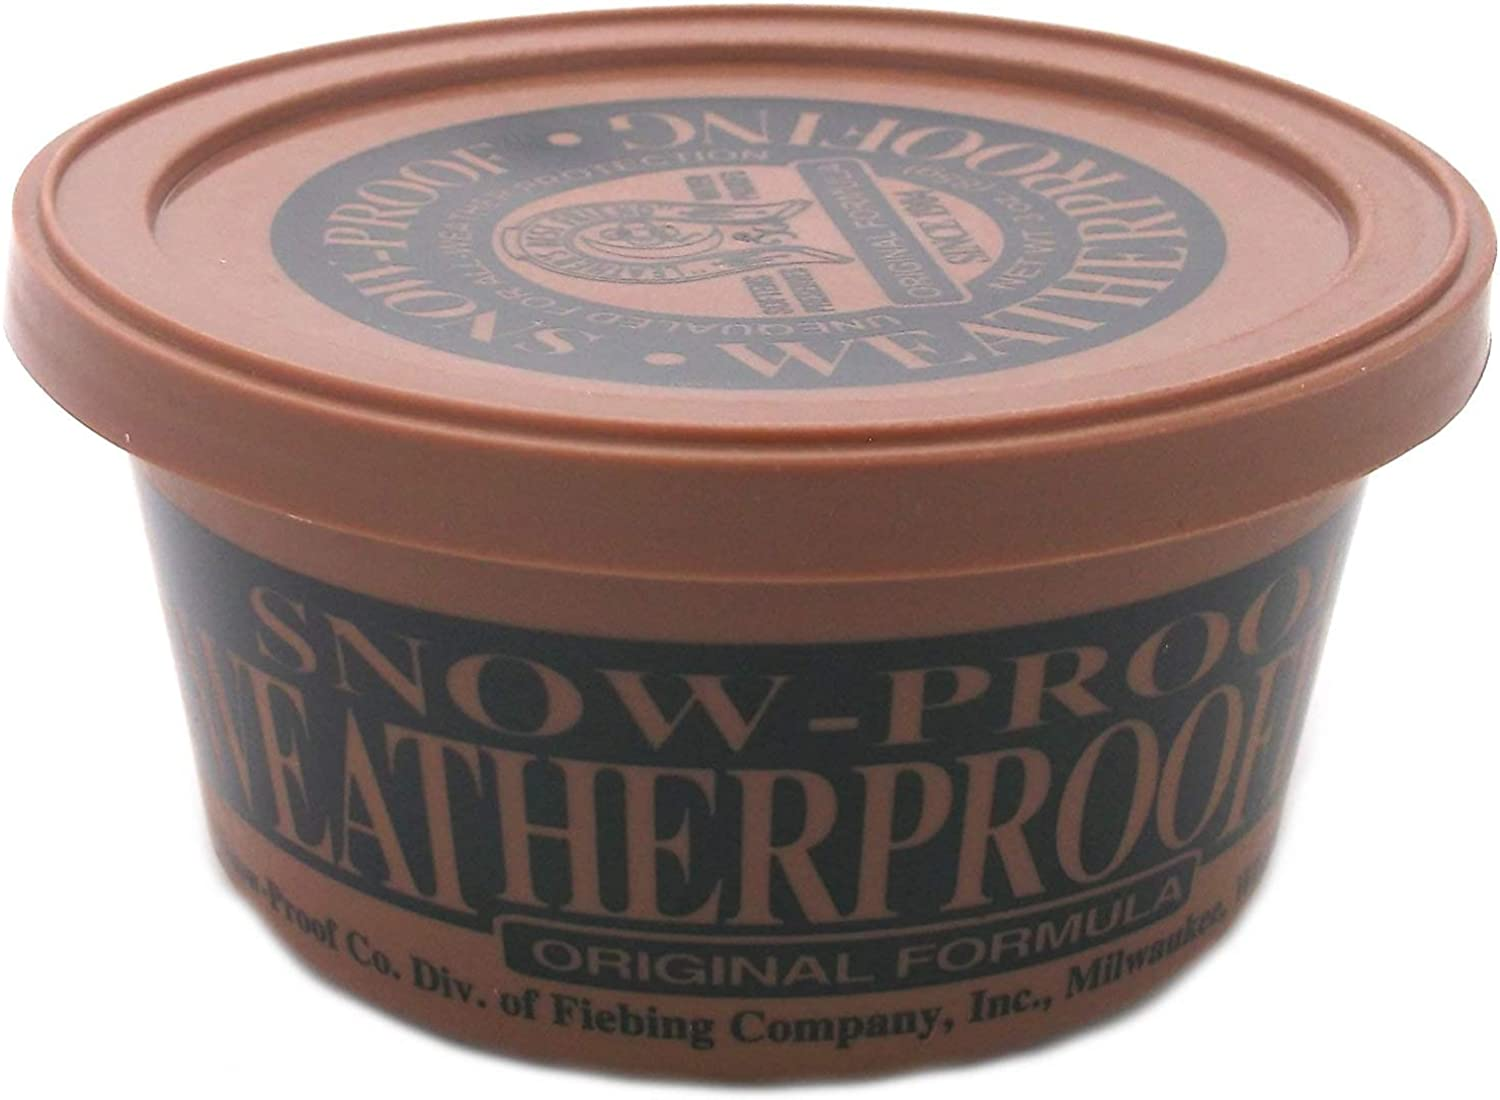 Snow Proof Weatherproofing Leather Conditioner Clear Oun 3oz Fort Worth Mall Purchase 3